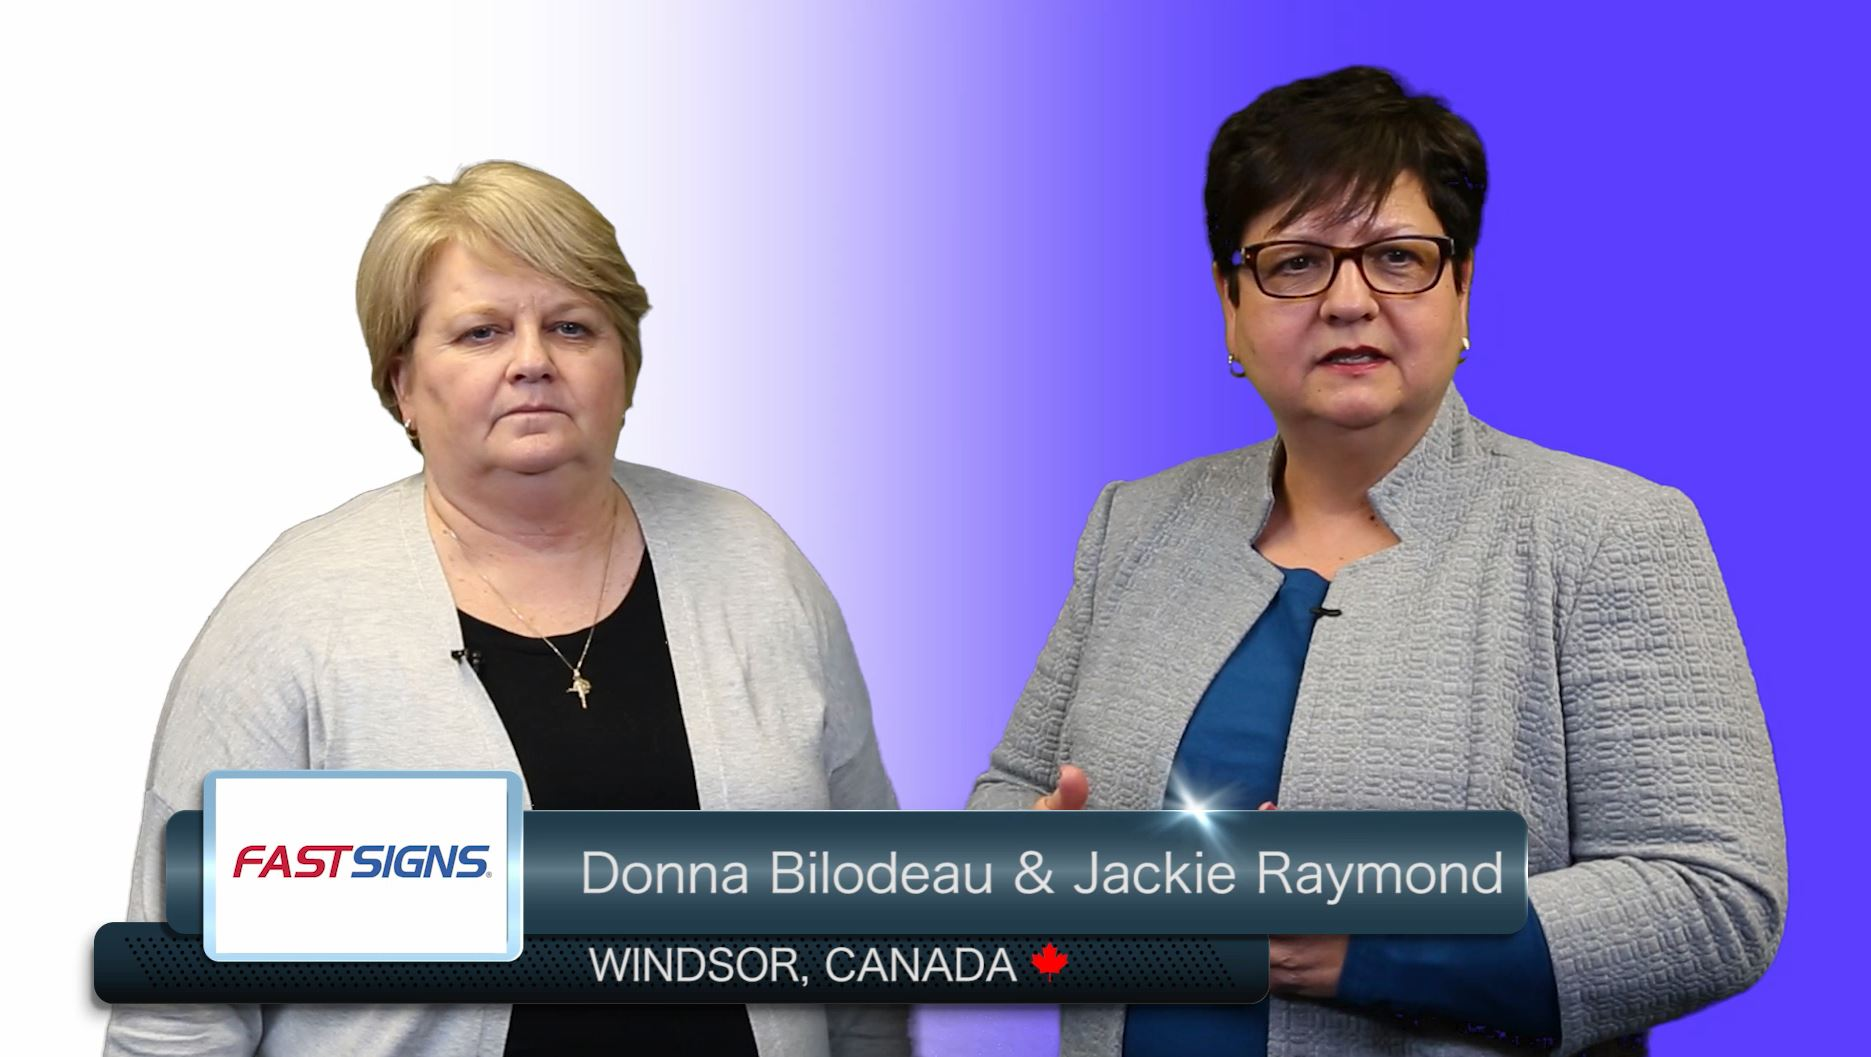 Franchise Owners - Donna Bilodeau & Jackie Raymond